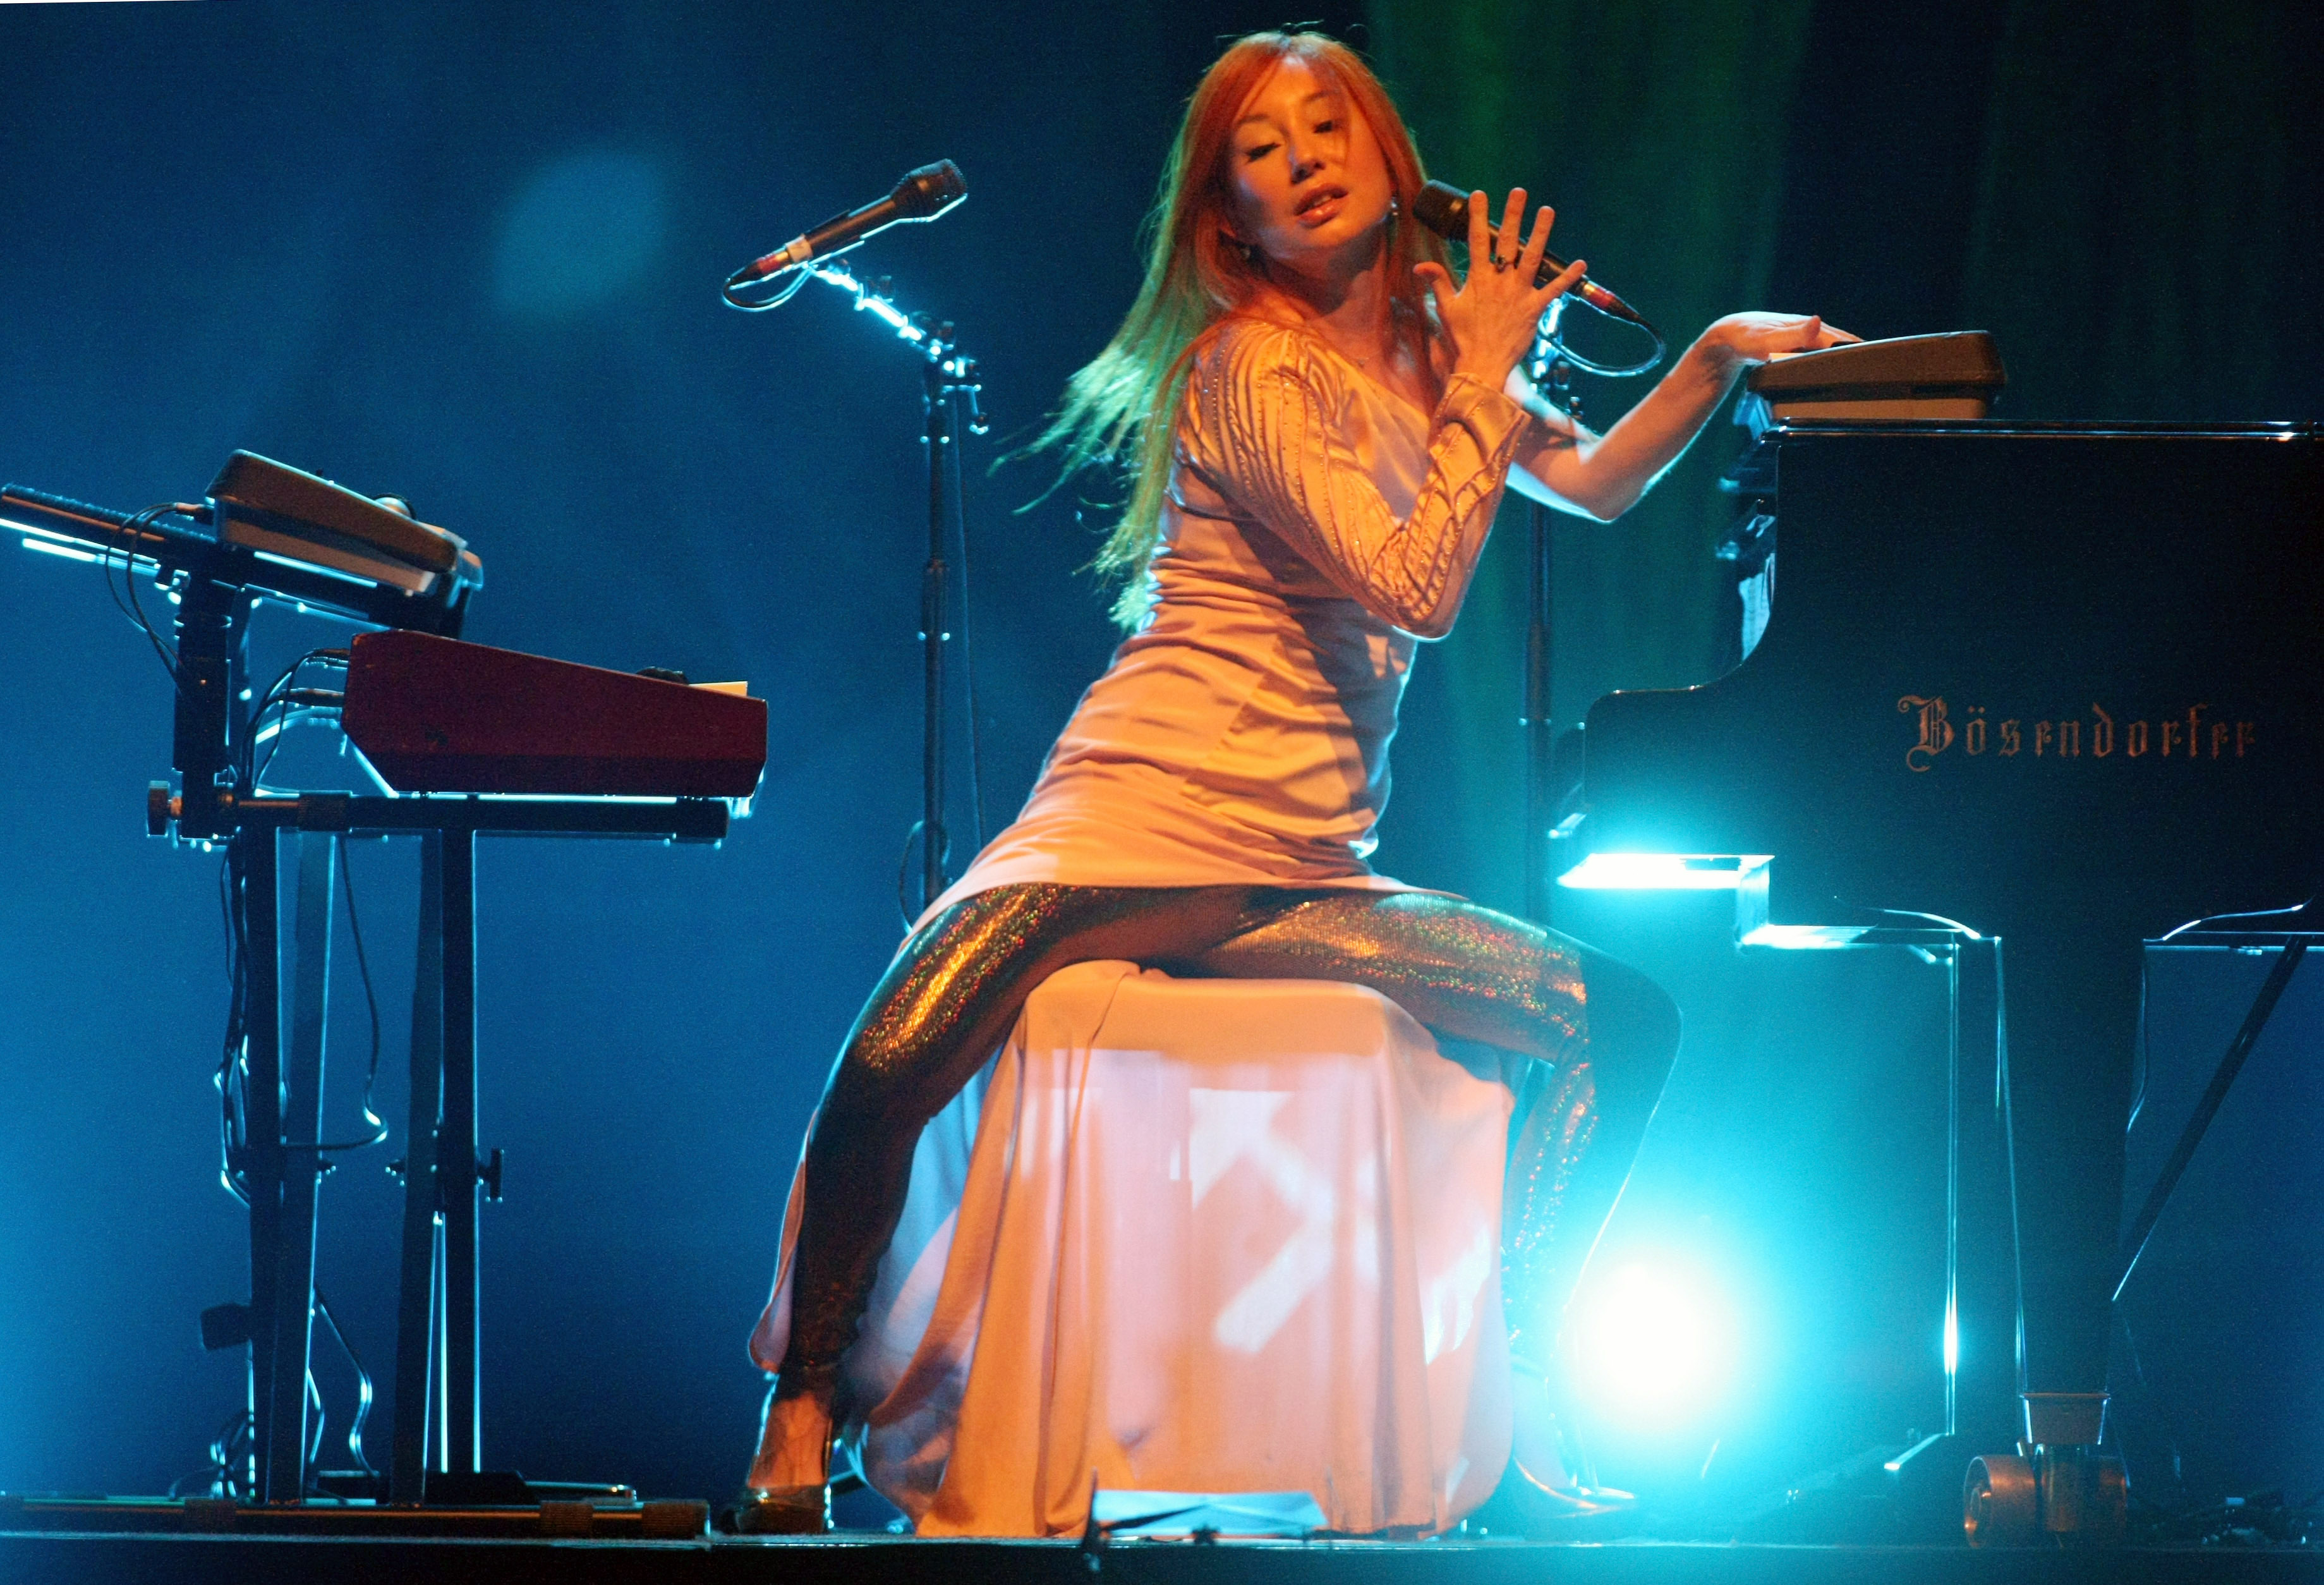 picture of Tori Amos preformance on stage at Cricus Krone 2009